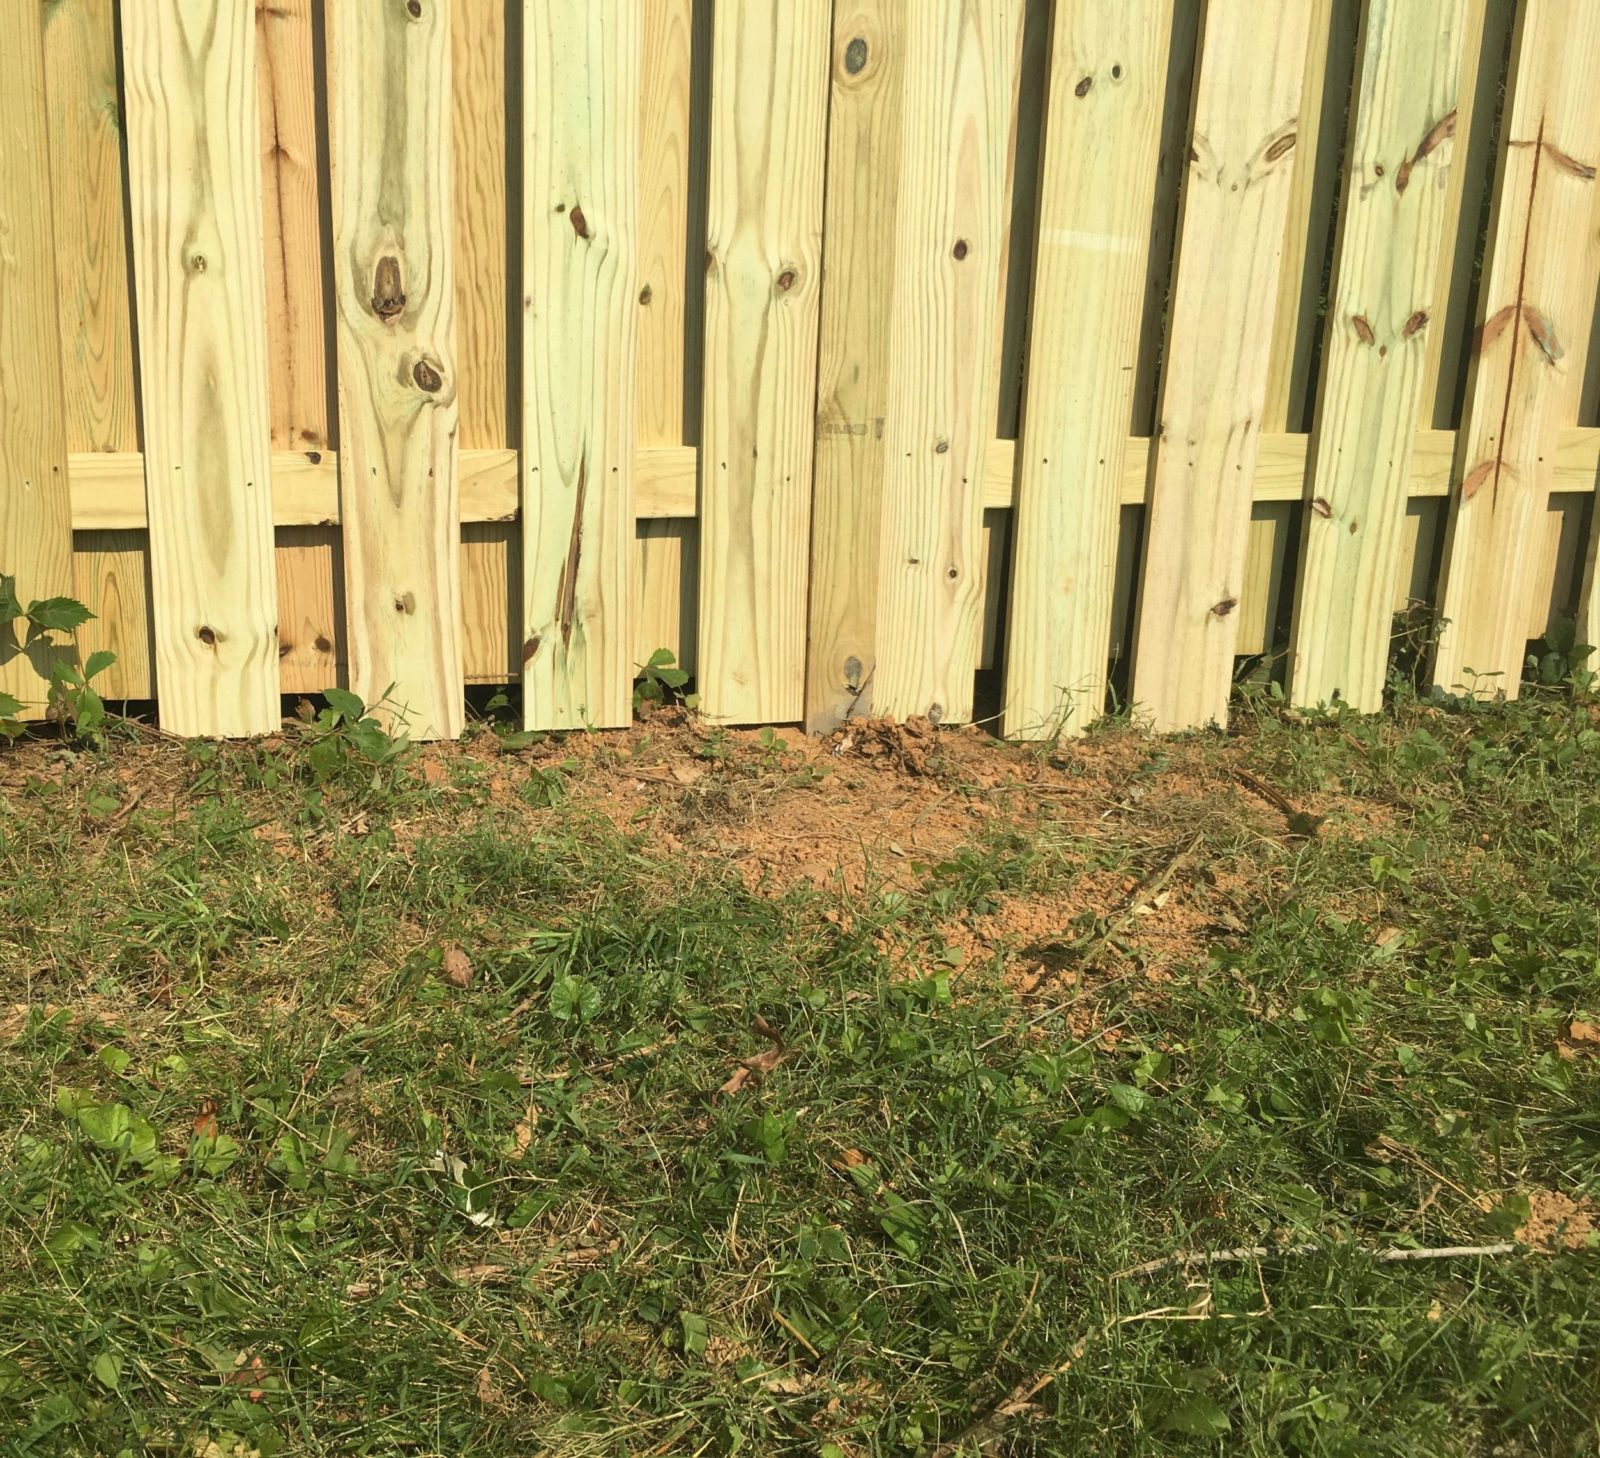 Fence Alignment: Aligned with the Ground (Custom)